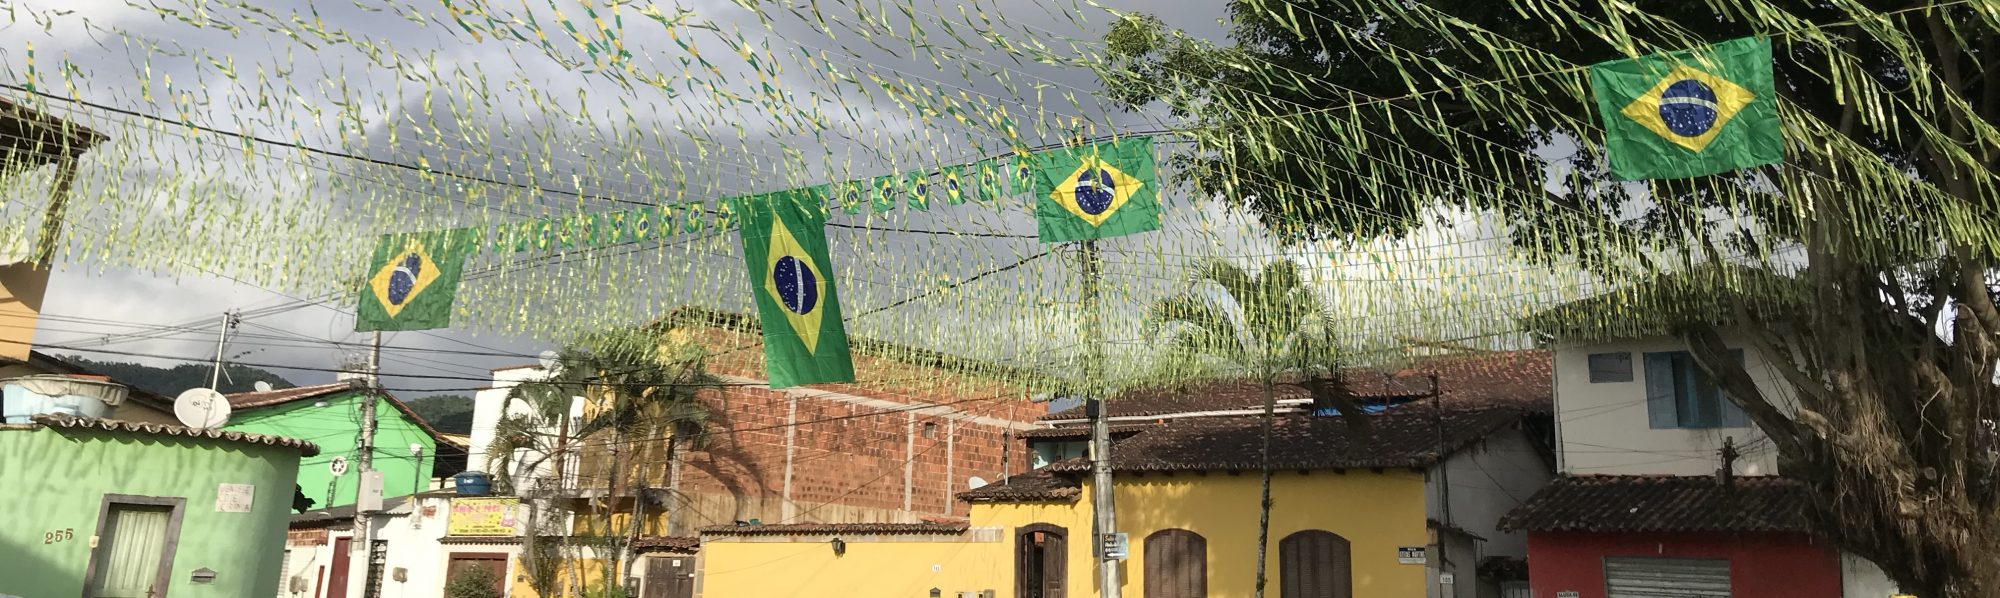 The Making of Modern Brazil: Marginal Spaces, Race and Modernity